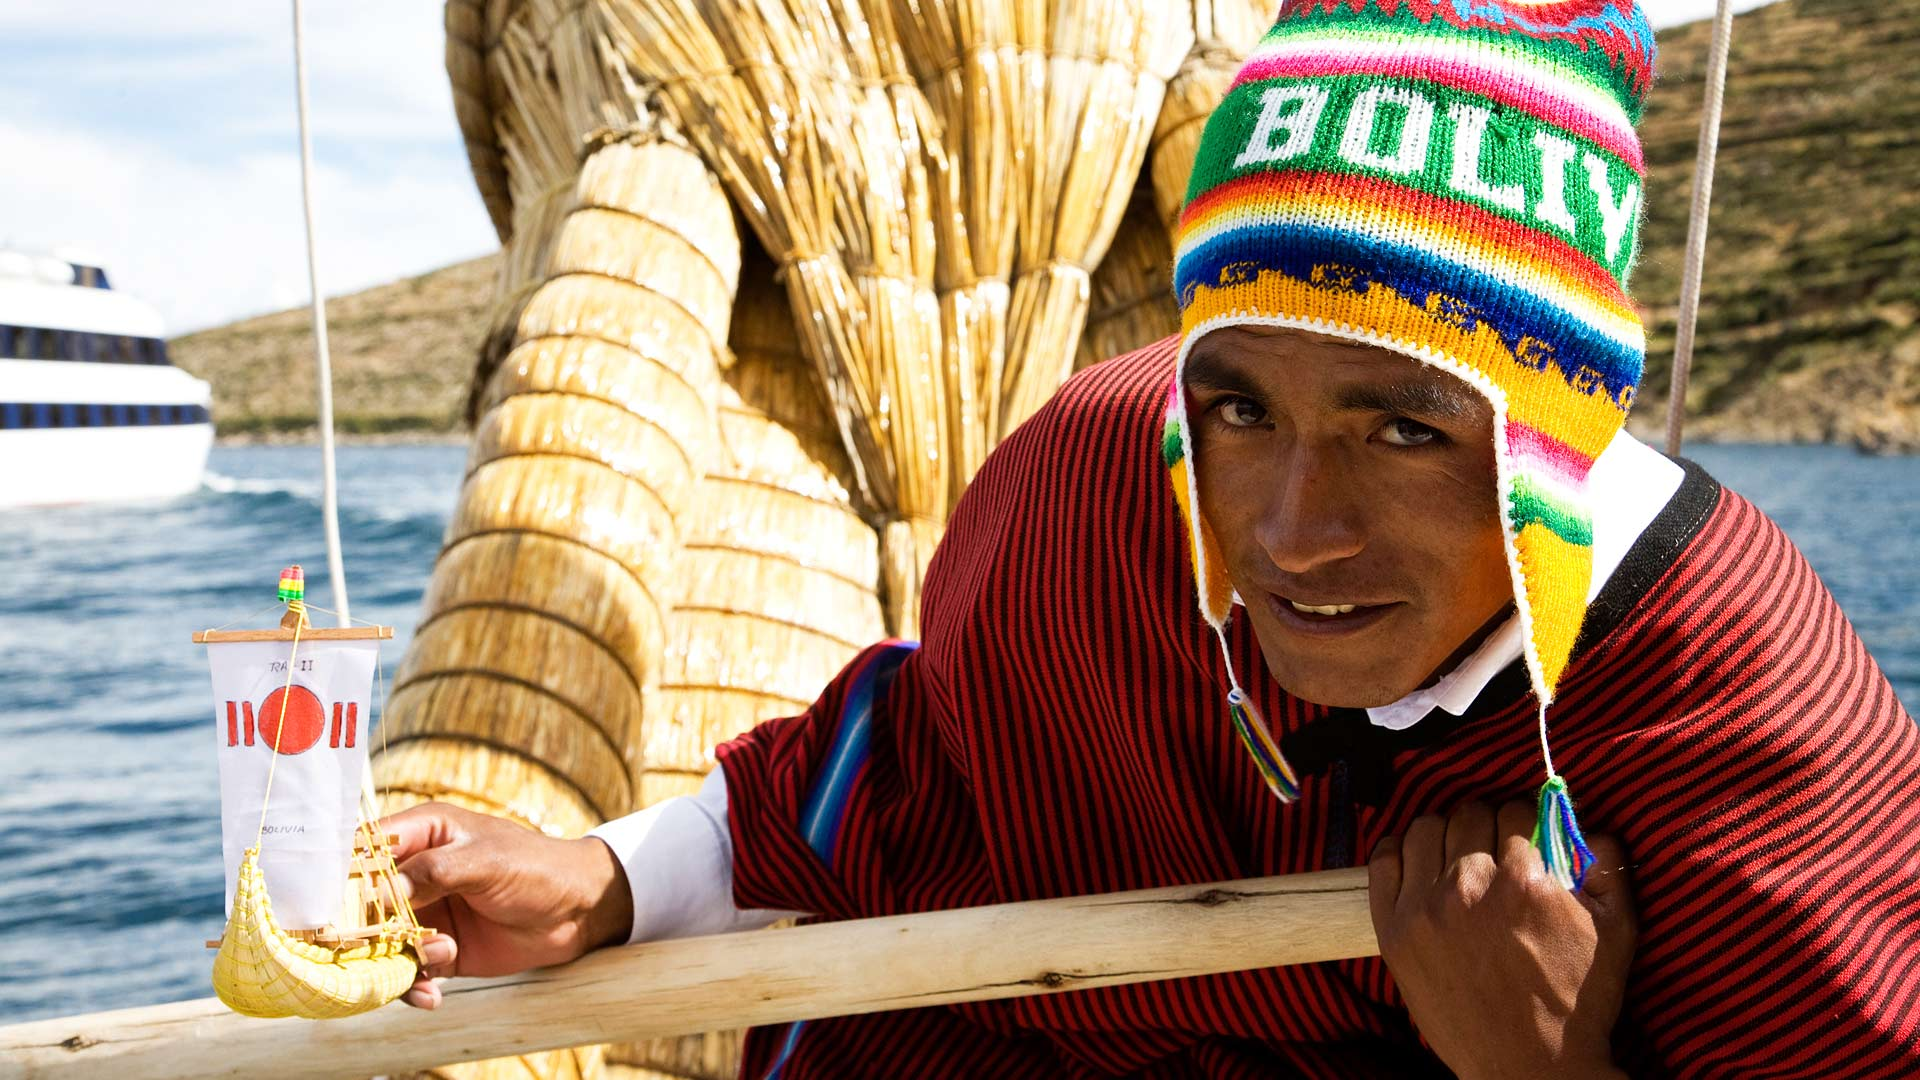 Aymara man dressed in traditional clothing rowing a tourist boat made of totora reeds around the Isla del Sol in Titicaca Lake